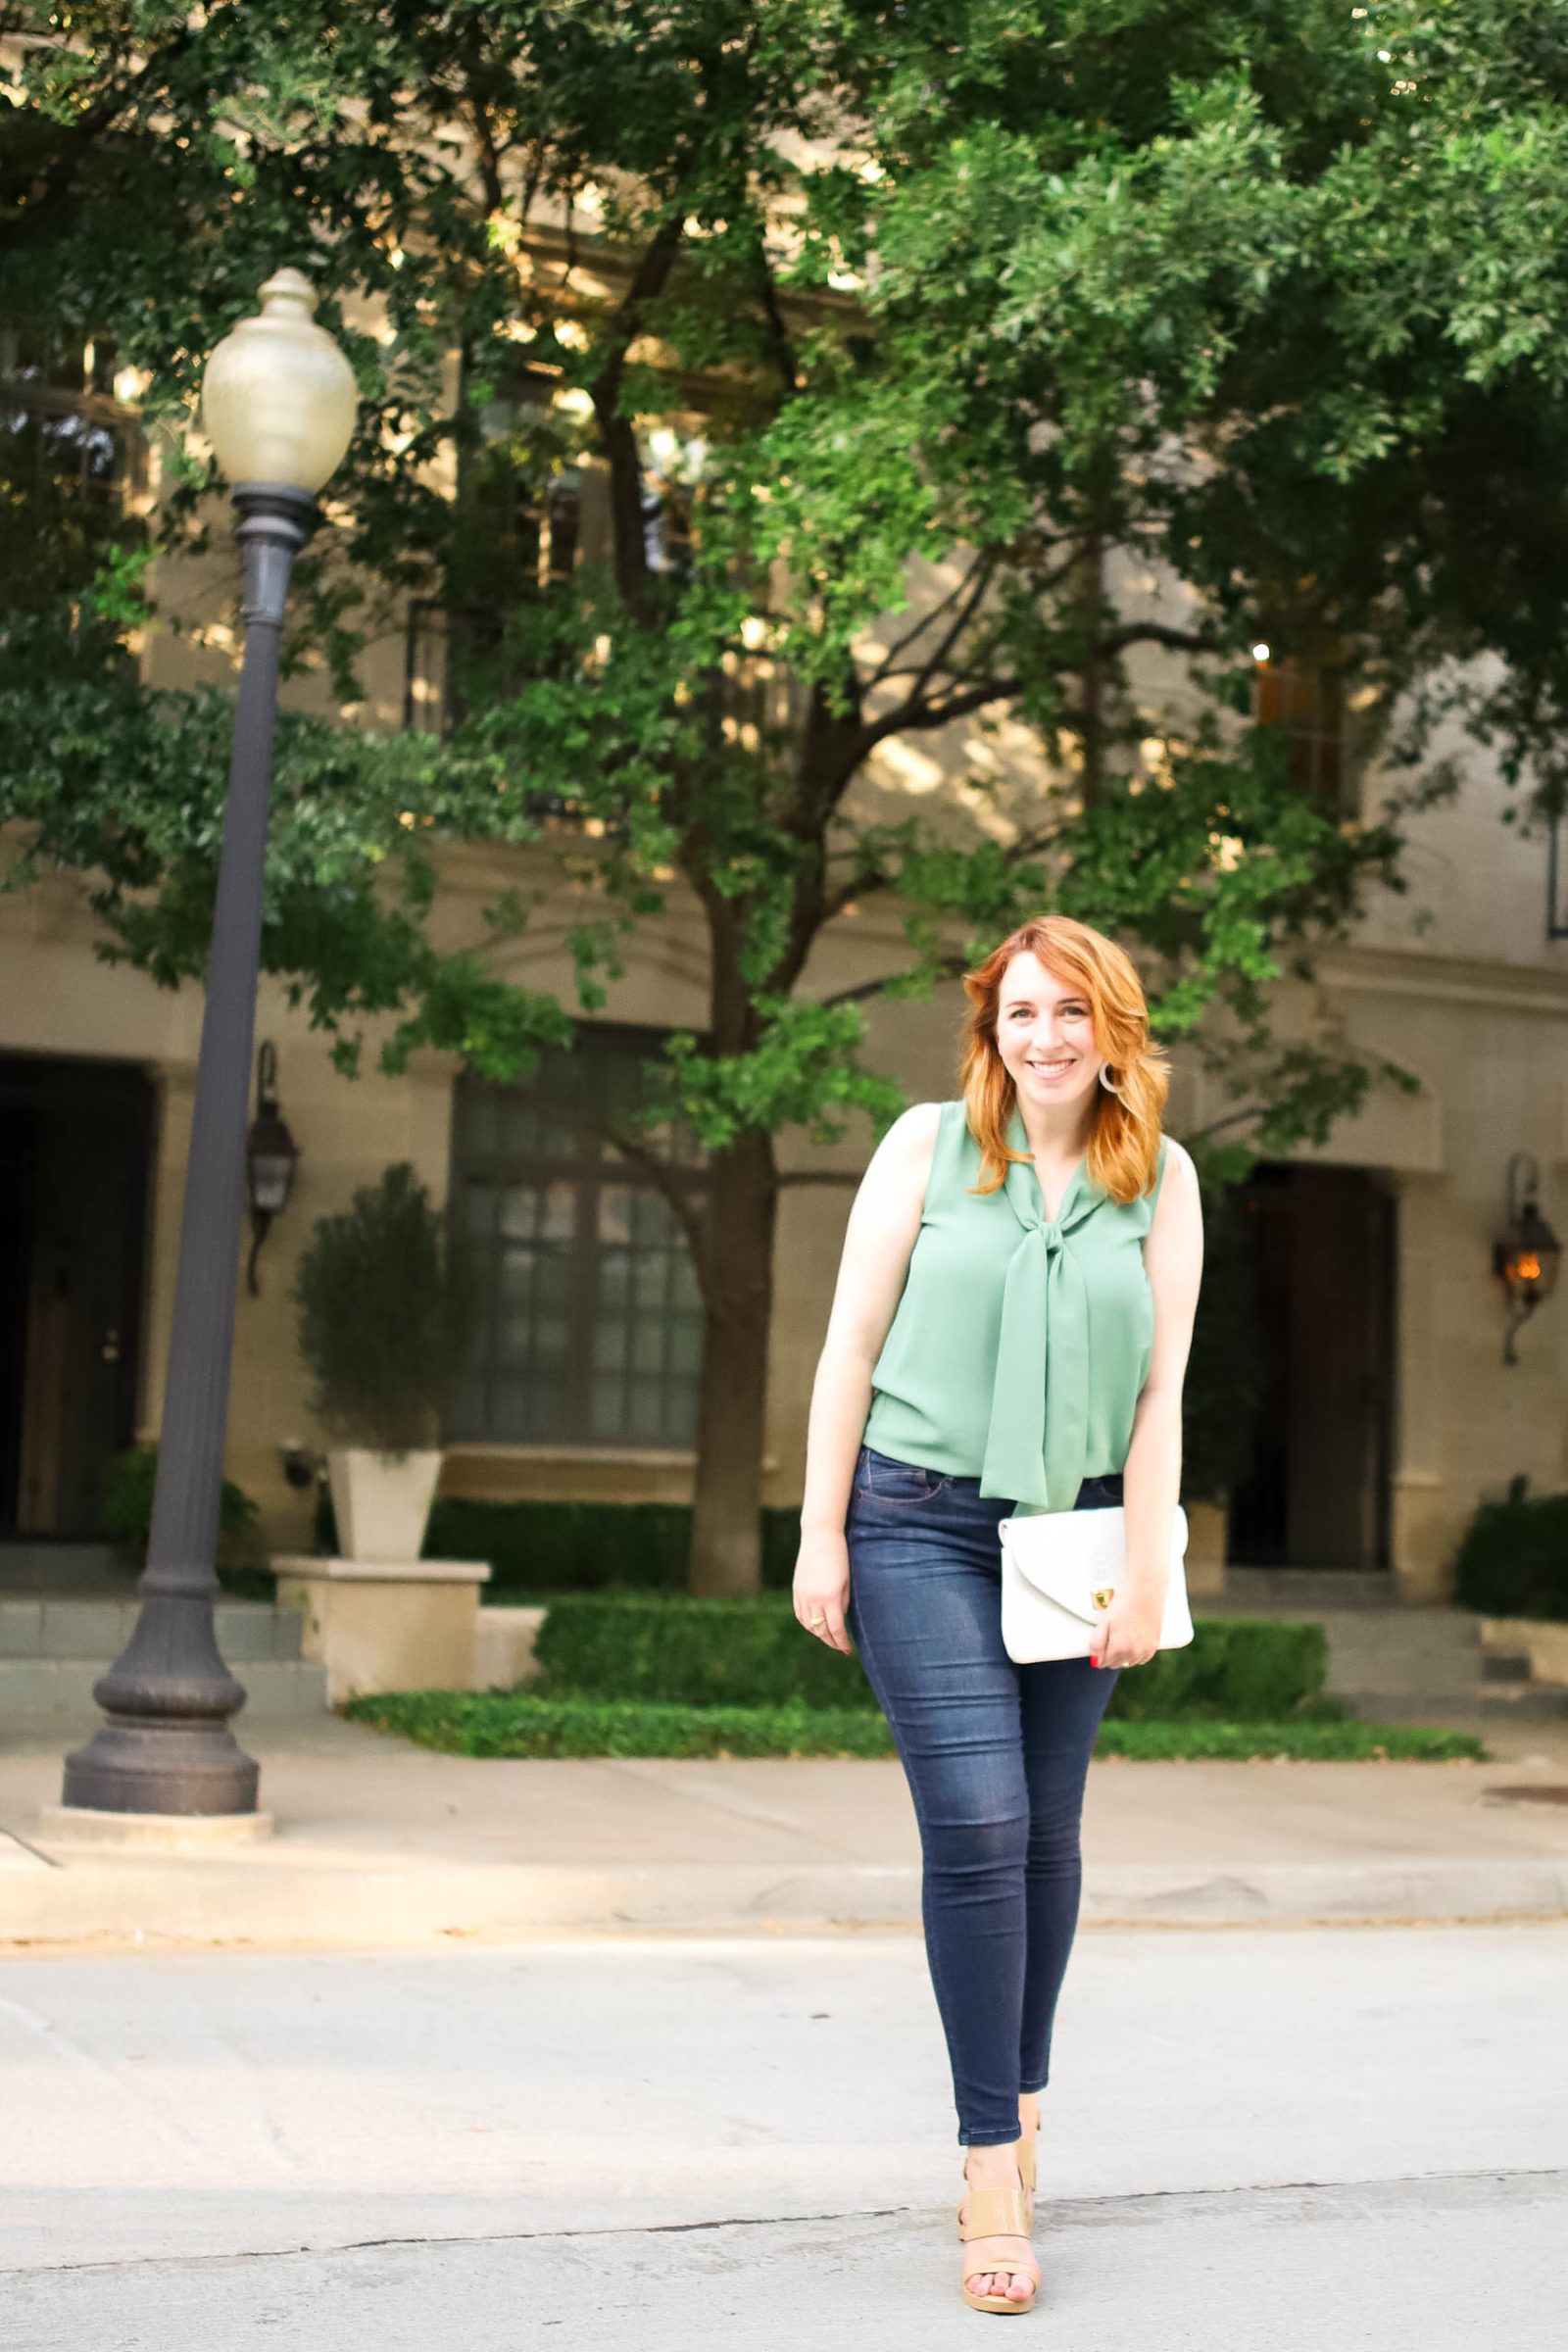 Amanda Kushner of lifestyle blog, Glitter & Spice shares her Weeknight Self Care Routine | Cute outfits for redheads to wear on dates | What to wear on a weeknight date